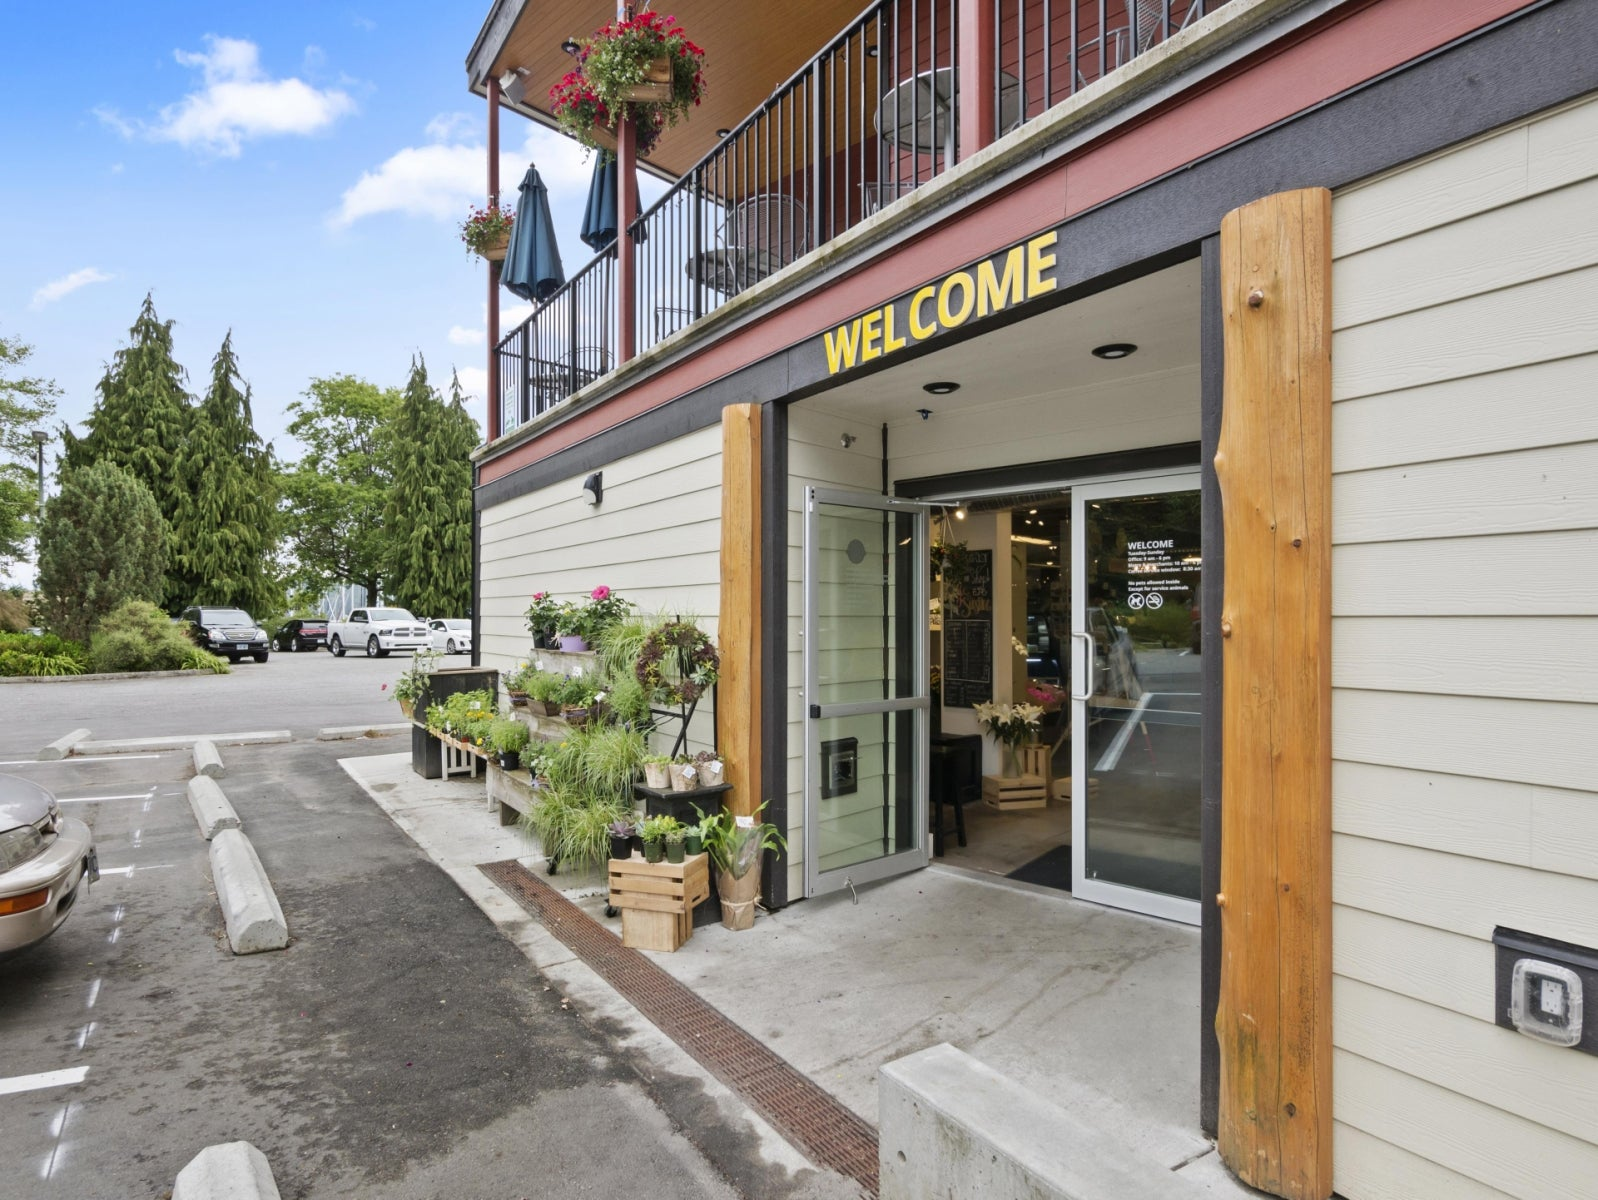 MARKET FLOWER SHOP      1 - 473 Gower Point Road, Gibsons BC V0N1V0 - Gibsons & Area COMM for sale(C8019459) #10